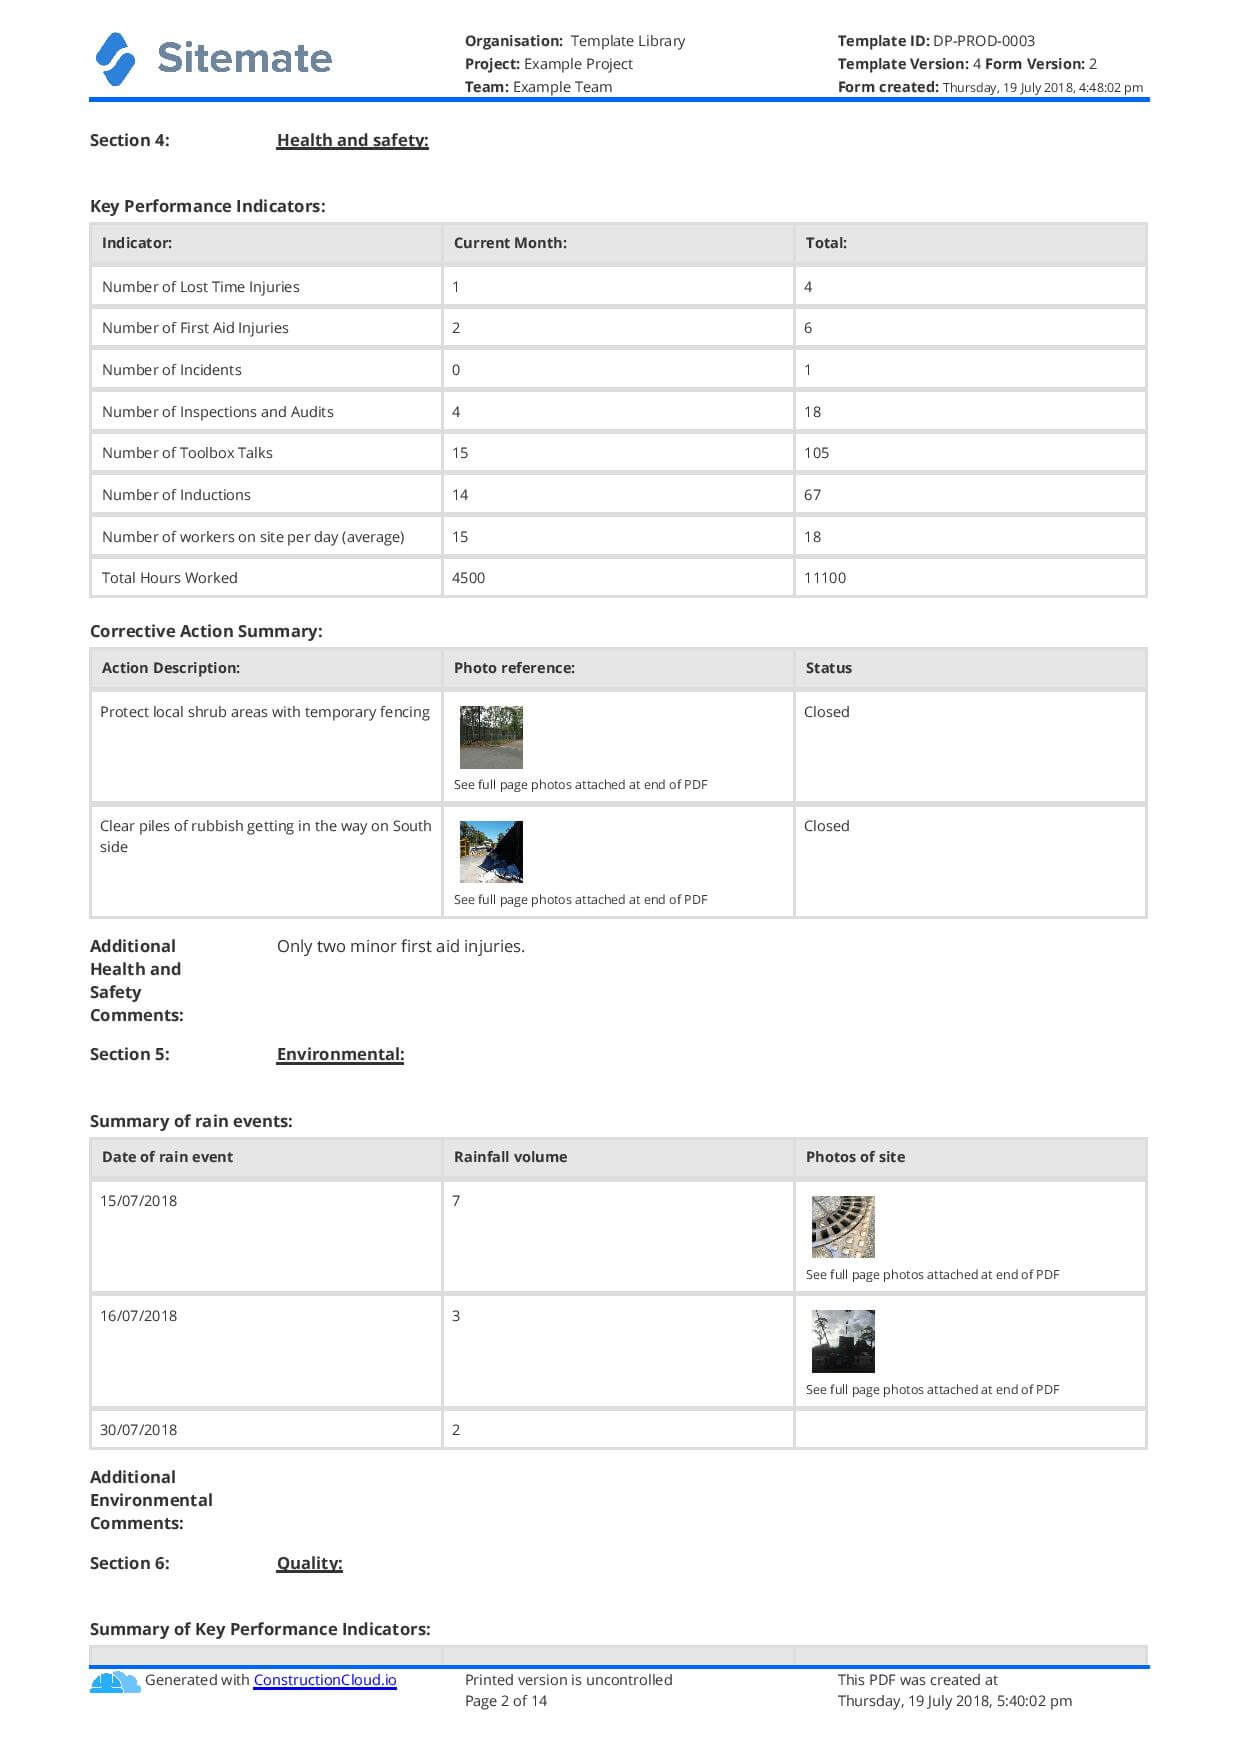 Monthly Construction Progress Report Template: Use This For Monthly Health And Safety Report Template